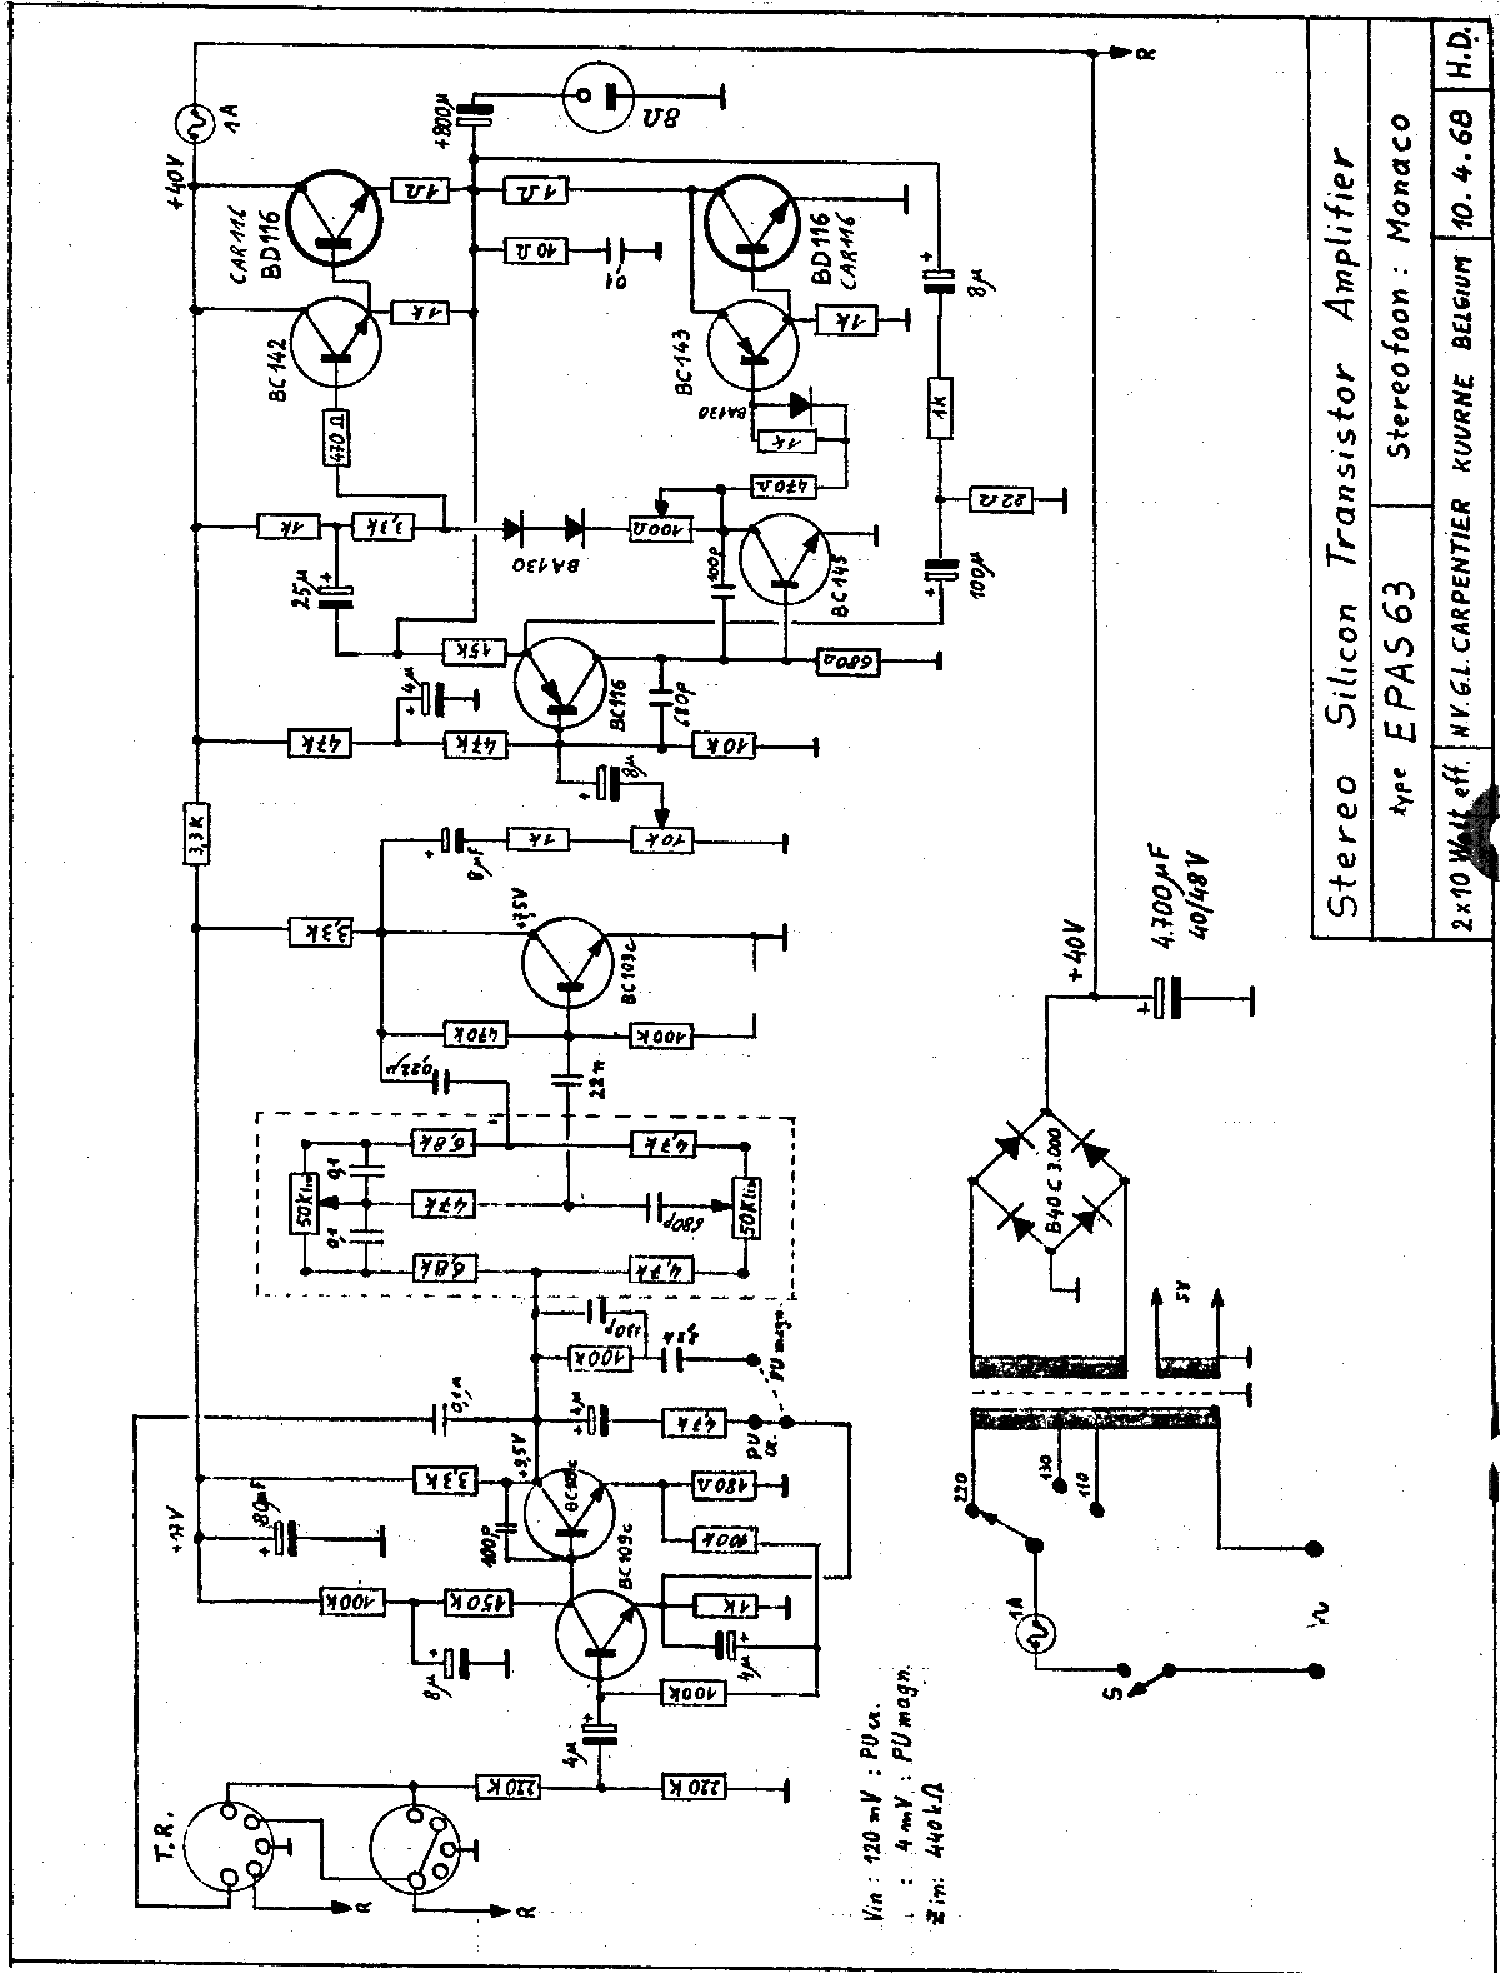 carad epas63 2x10w stereo transistor amplifier sch service manual download  schematics  eeprom